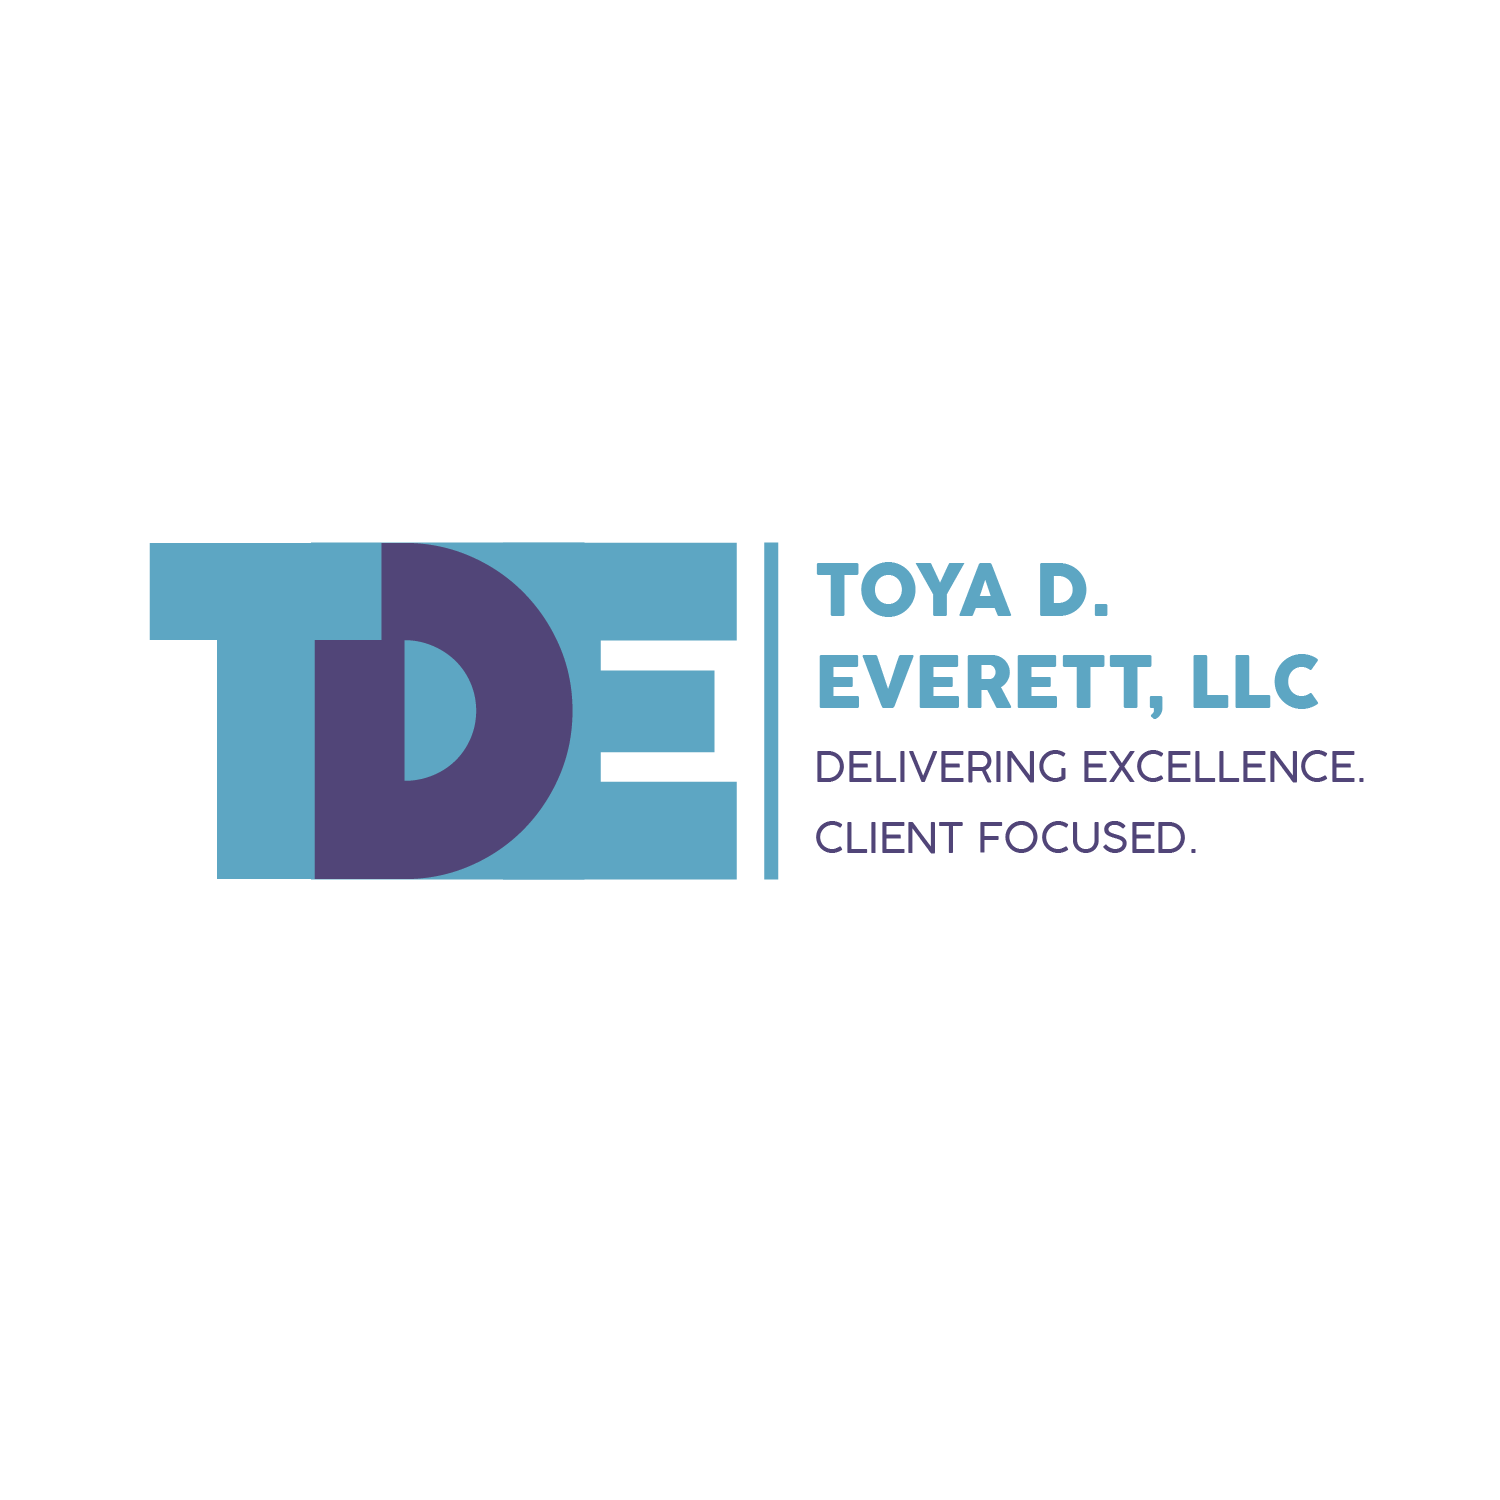 Toya D. Everett, LLC